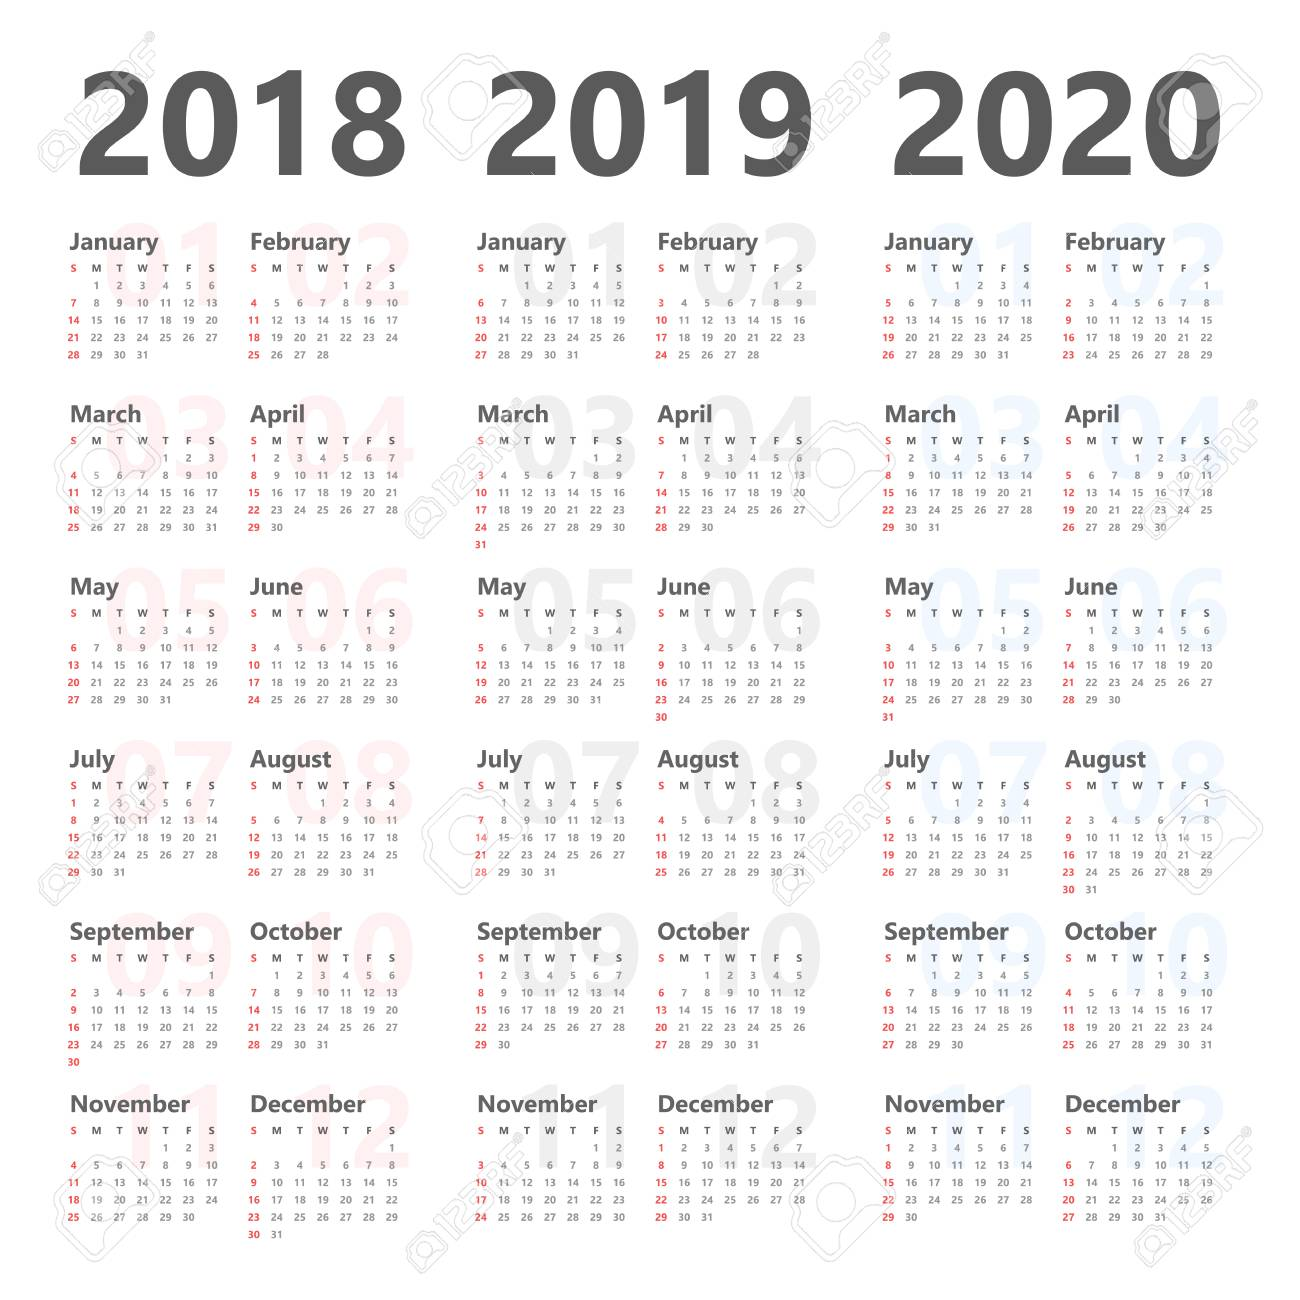 Calendar 2020 And 2018 Yearly Calendar Template For 2018 To 2020. Royalty Free Cliparts